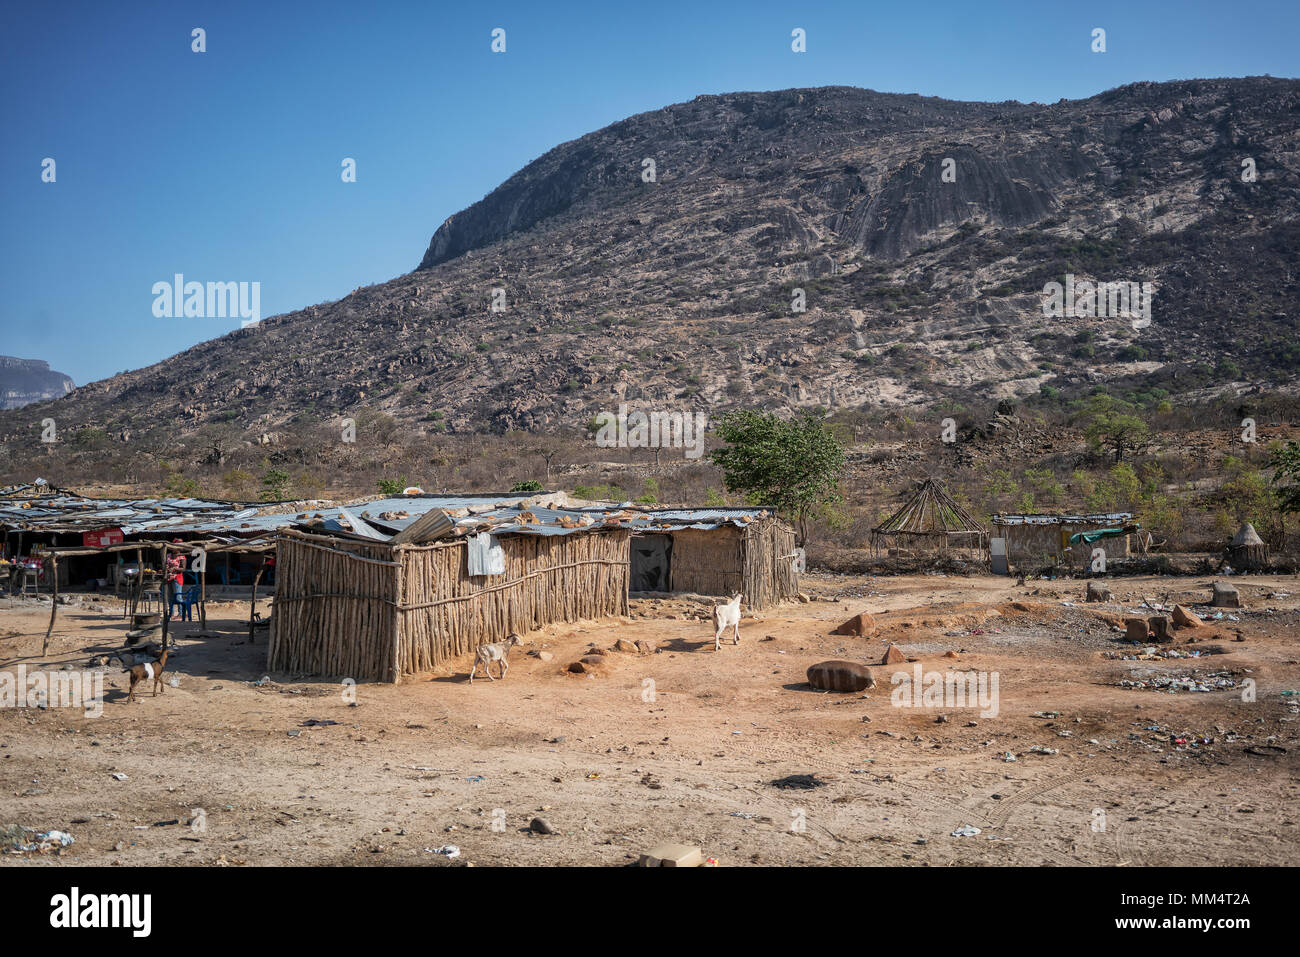 NAMIBE/ANGOLA - 27OCT2017 - African street market, next to the road that goes to Lubango. - Stock Image